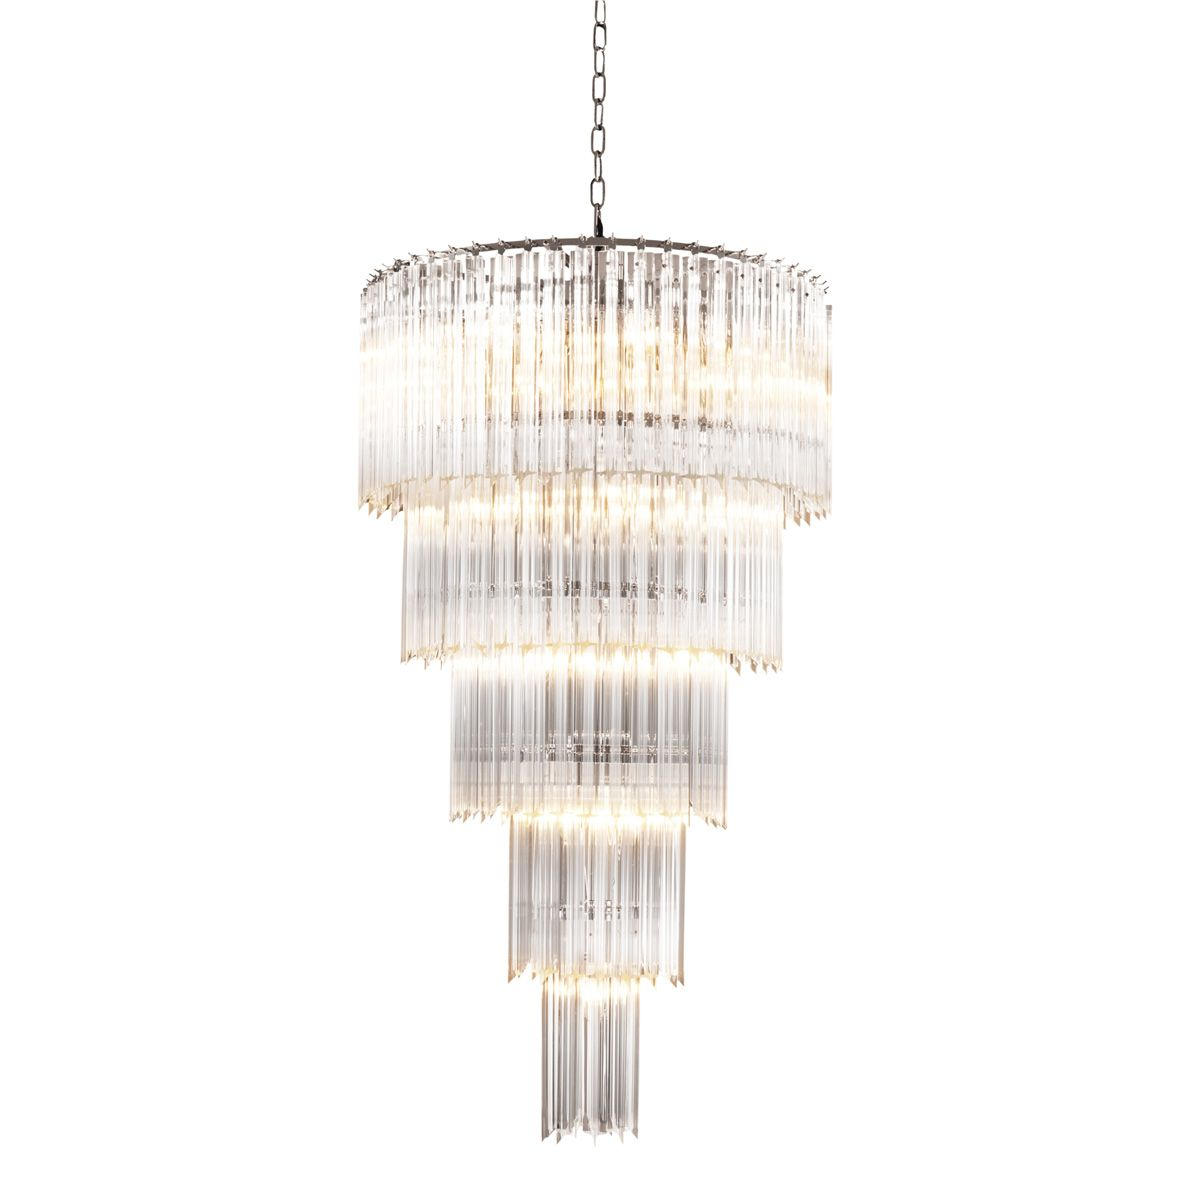 For lounge chandelier alpina l eichholtz eichholtz order eichholtz alpina chandelier range absolutely showstopping large hanging chandelier with glass droplets cascading from the nickel finish frame arubaitofo Gallery